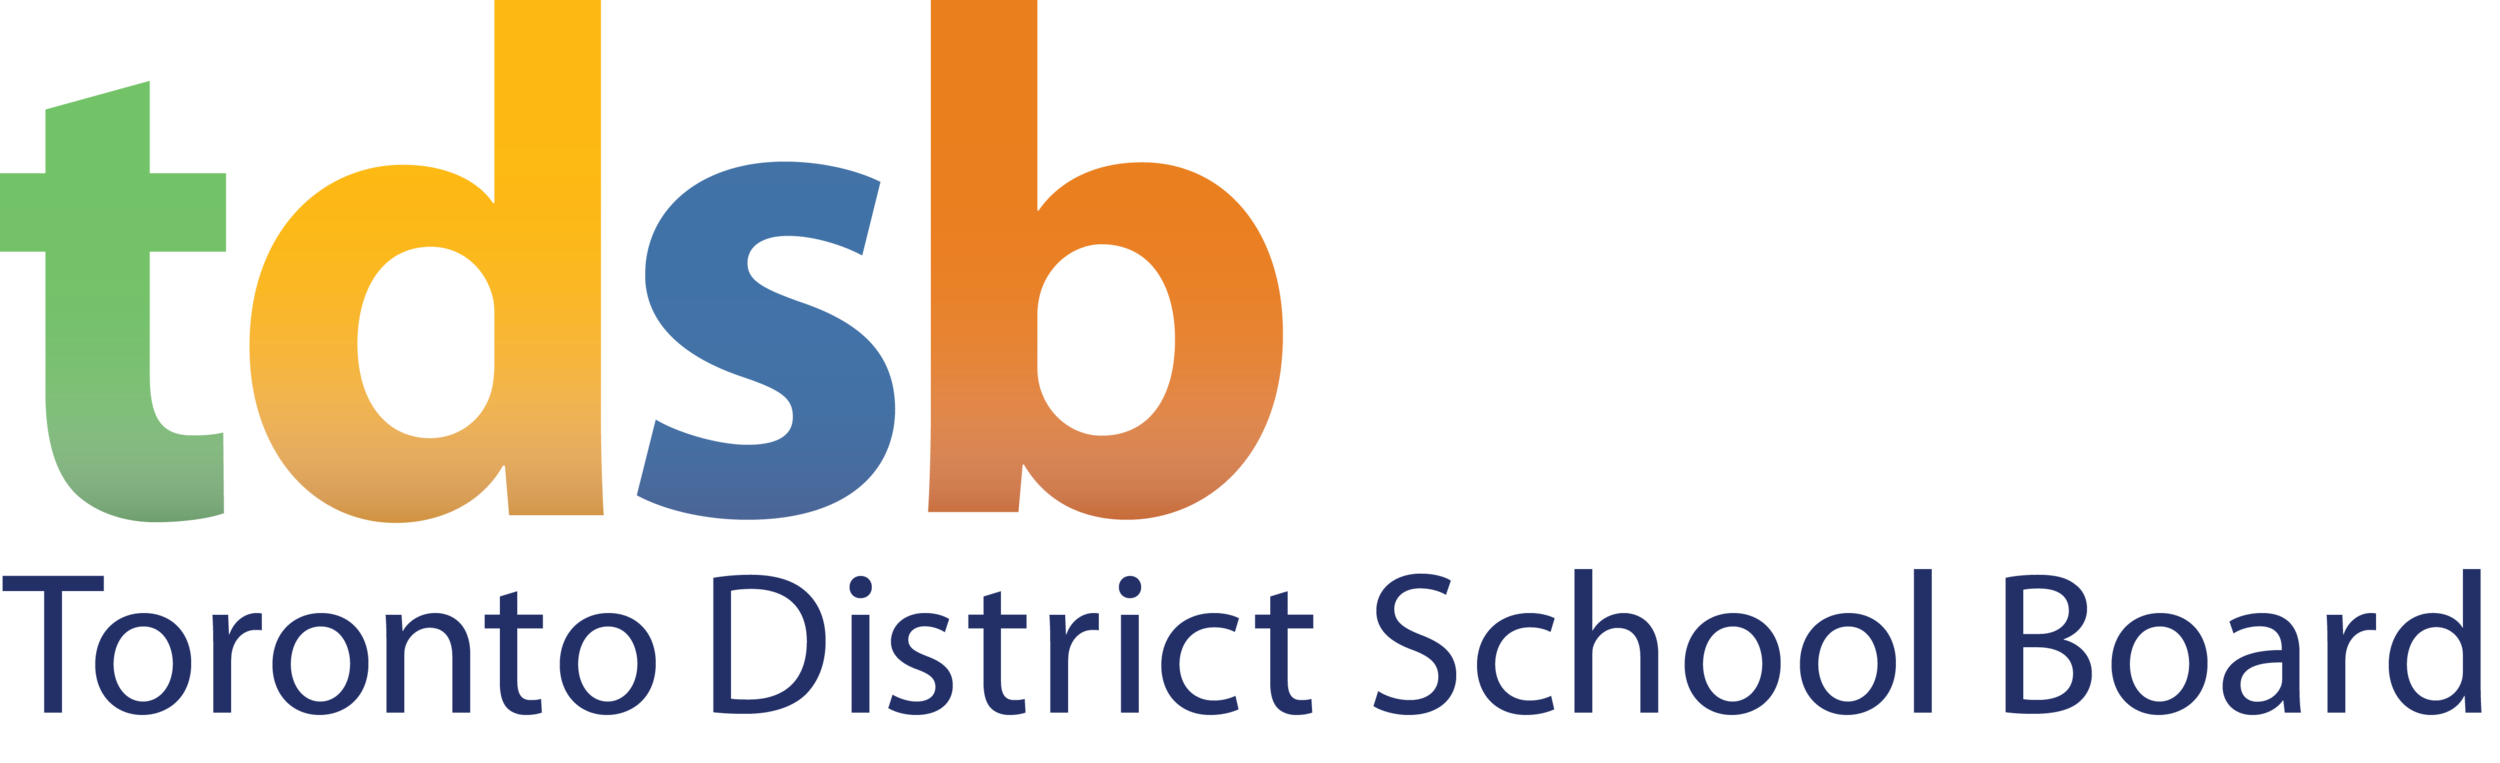 TDSB_Wordmark_Full.png